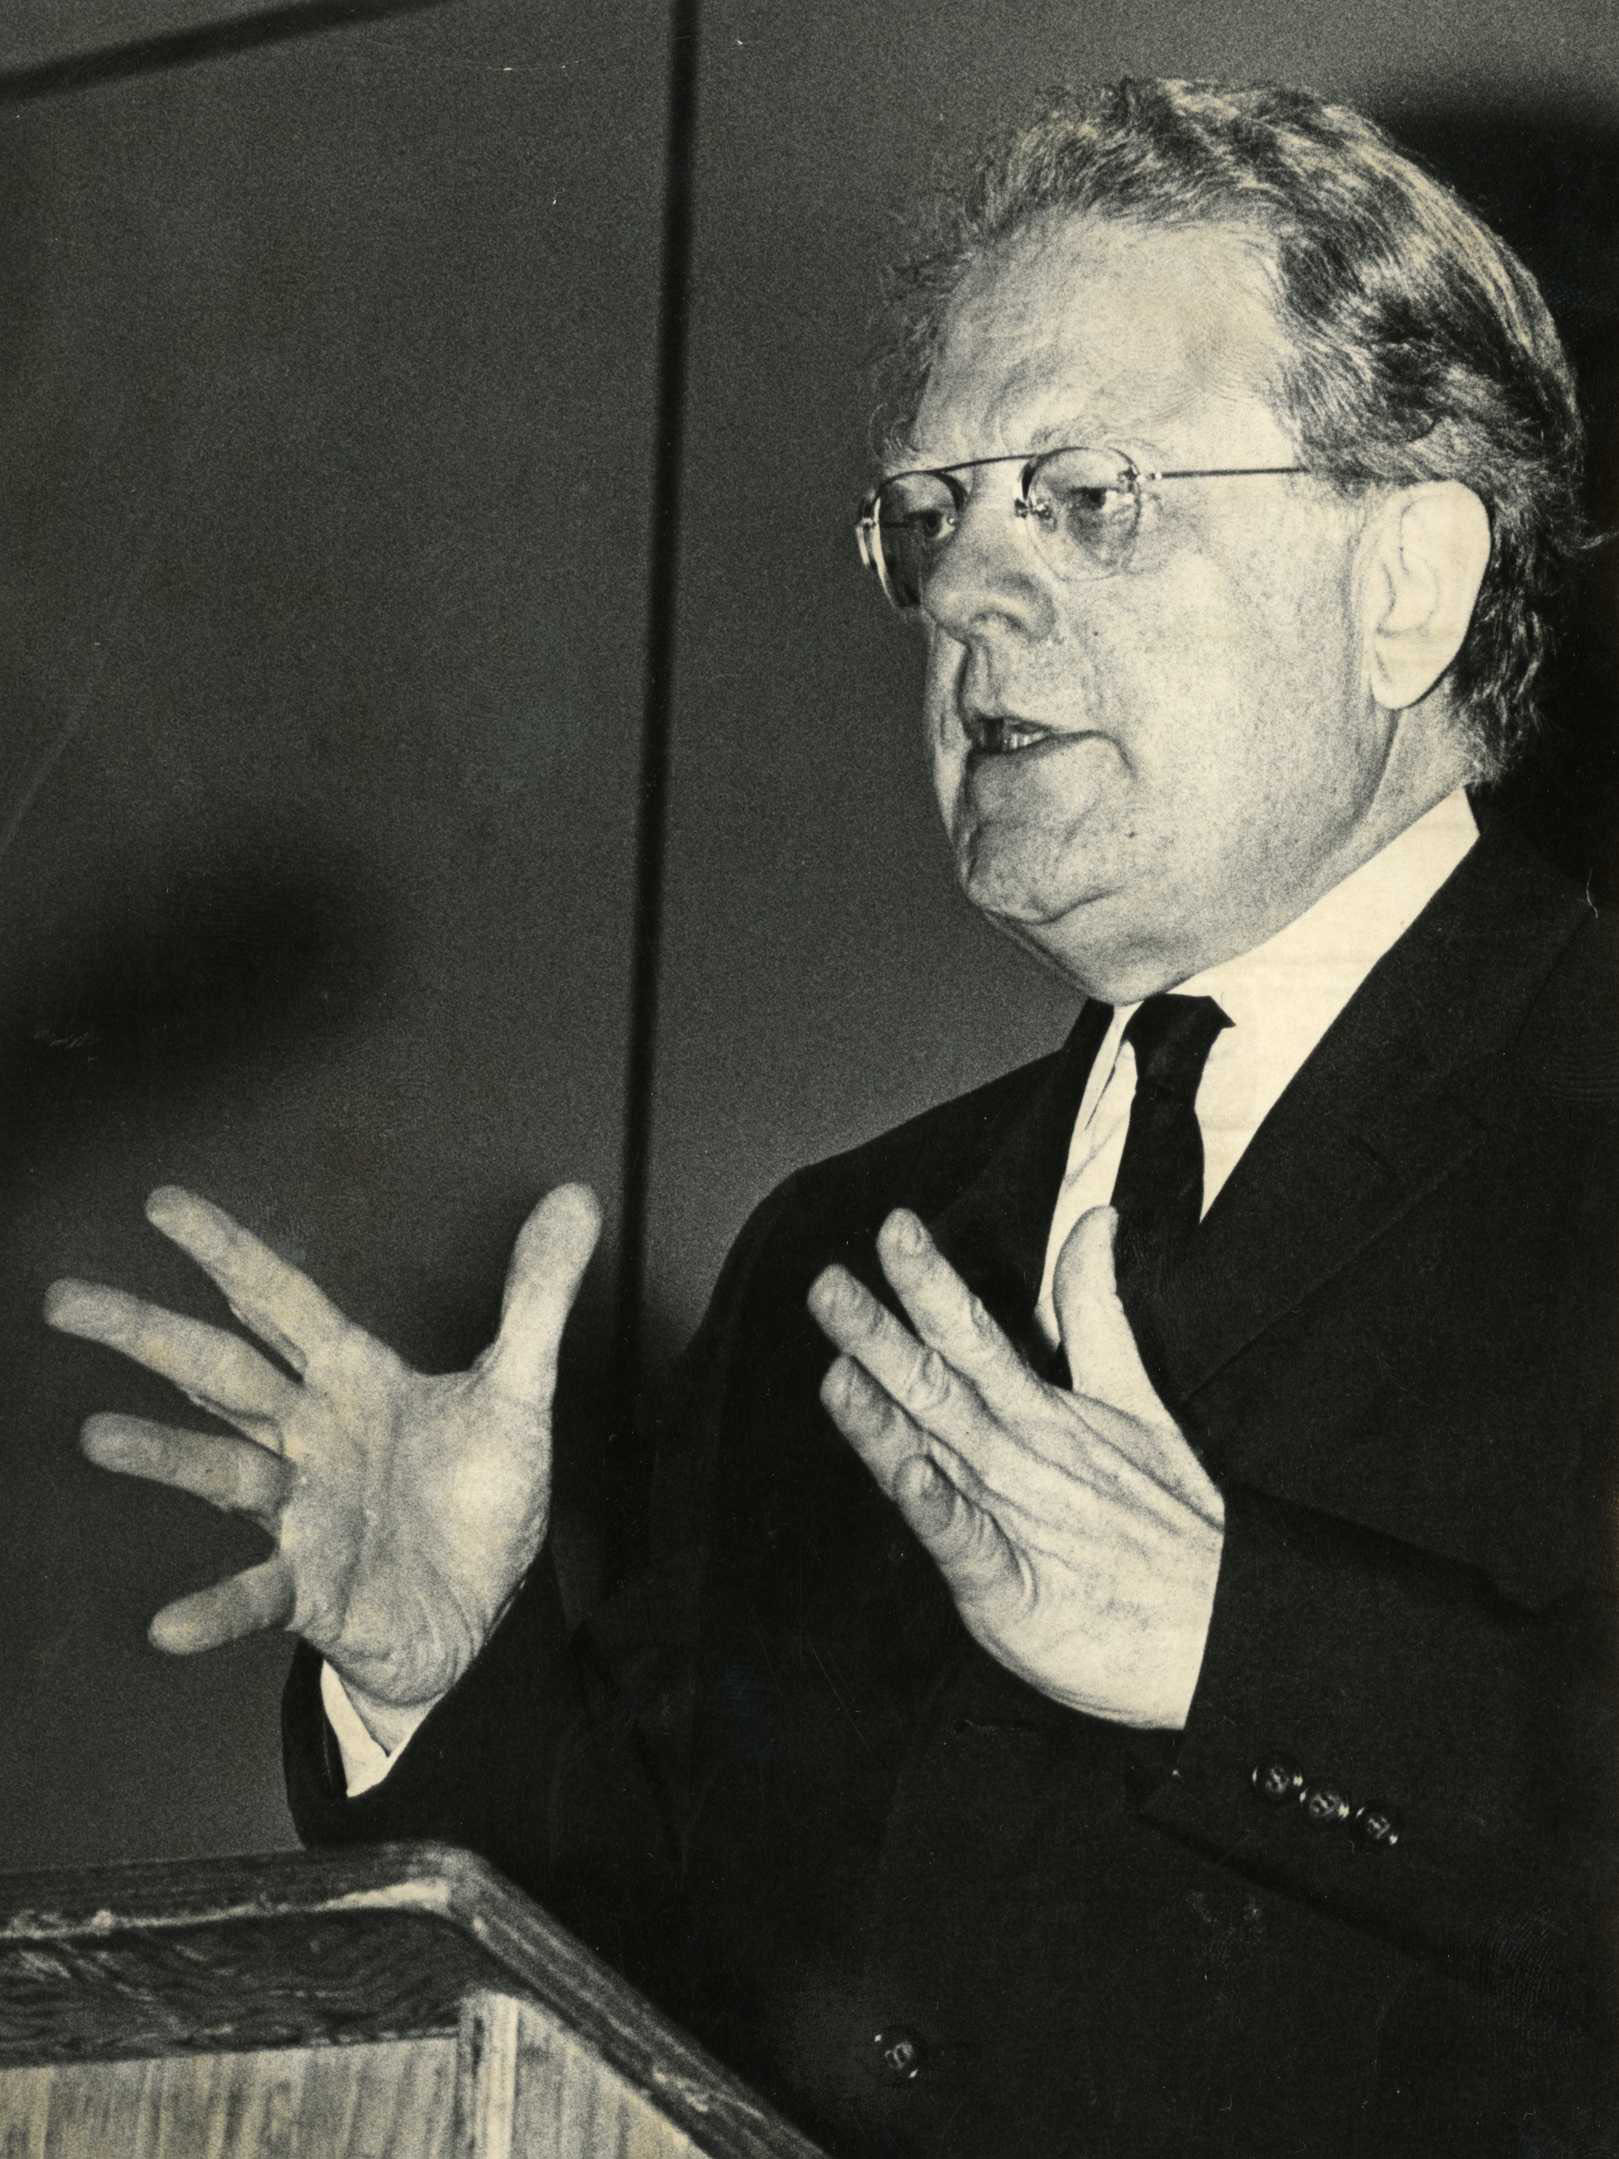 centre and labyrinth essays in honour of northrop frye Online download centre and labyrinth essays in honour of northrop frye centre and labyrinth essays in honour of northrop frye bargaining with reading habit is no need.